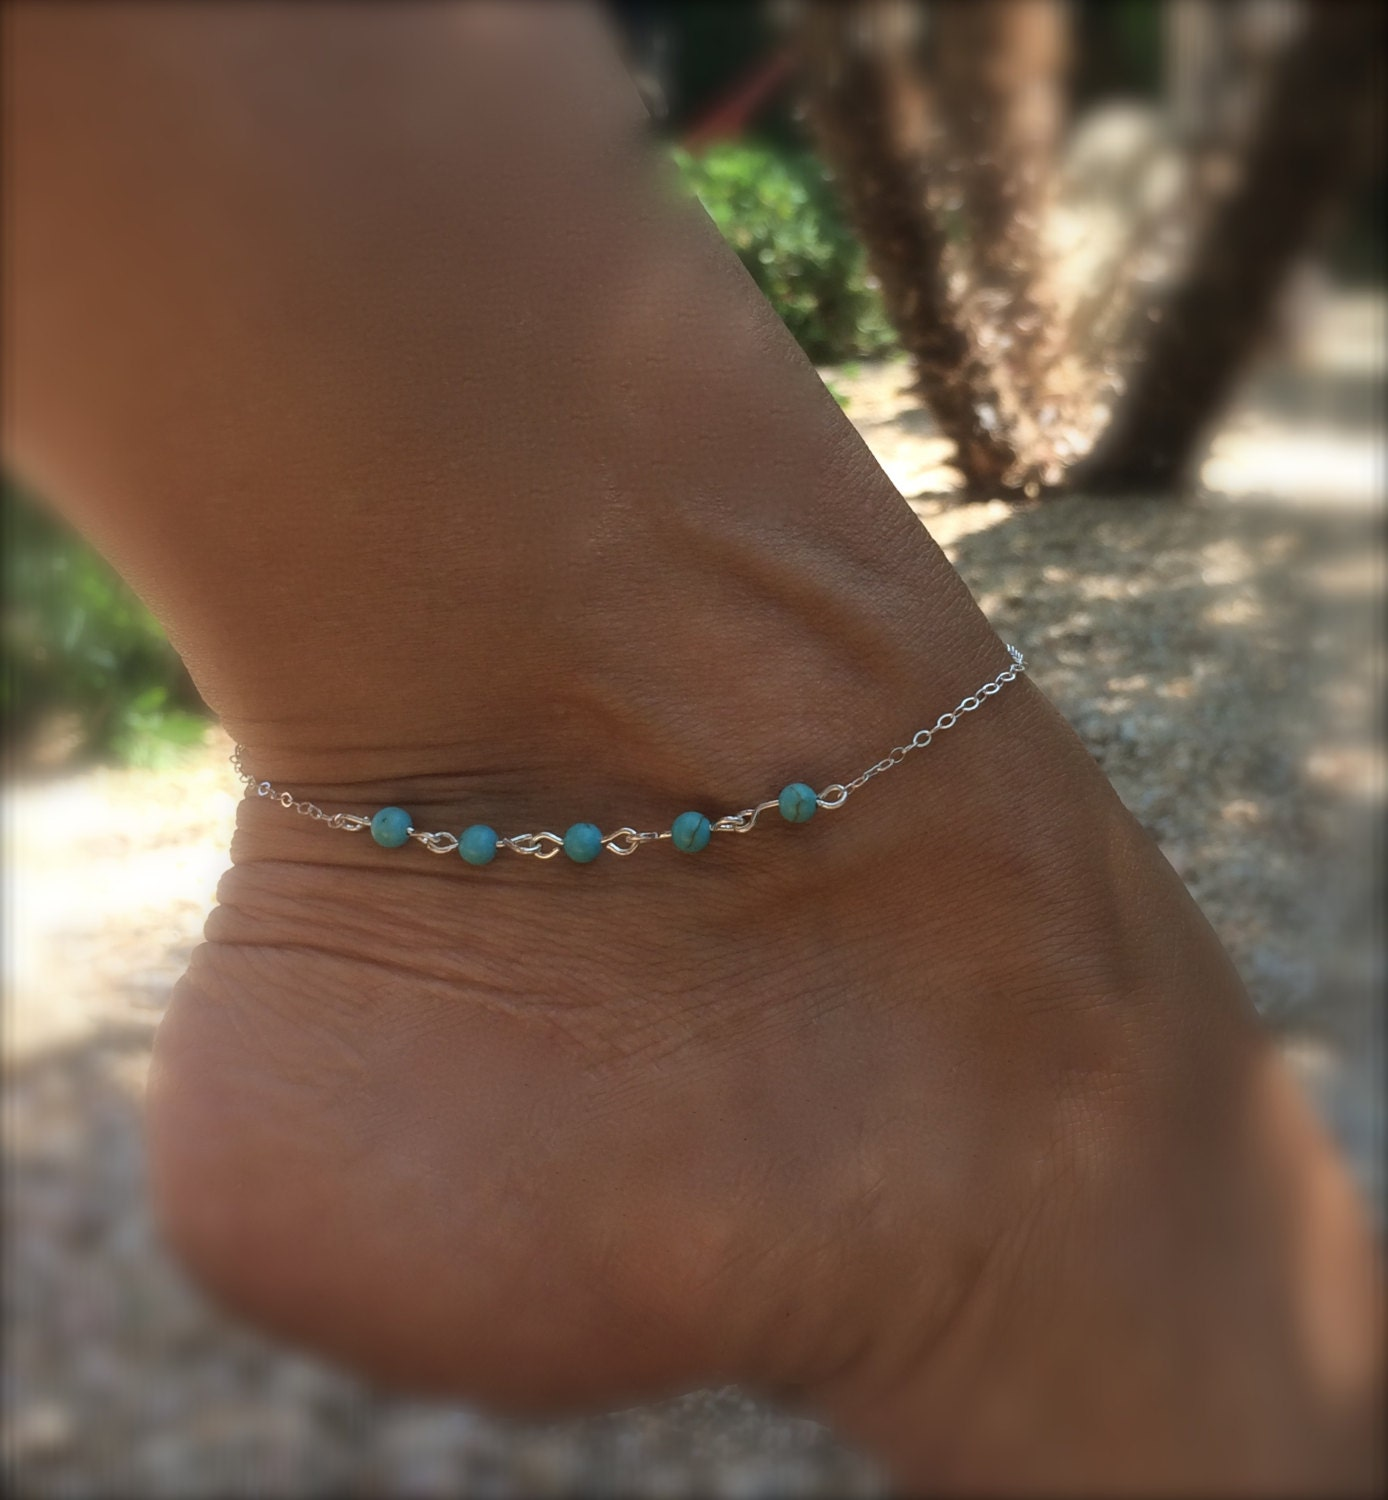 anklet earthkidsfeatherwithturquoise products bracelets img embella bracelet feather turquoise jewellery